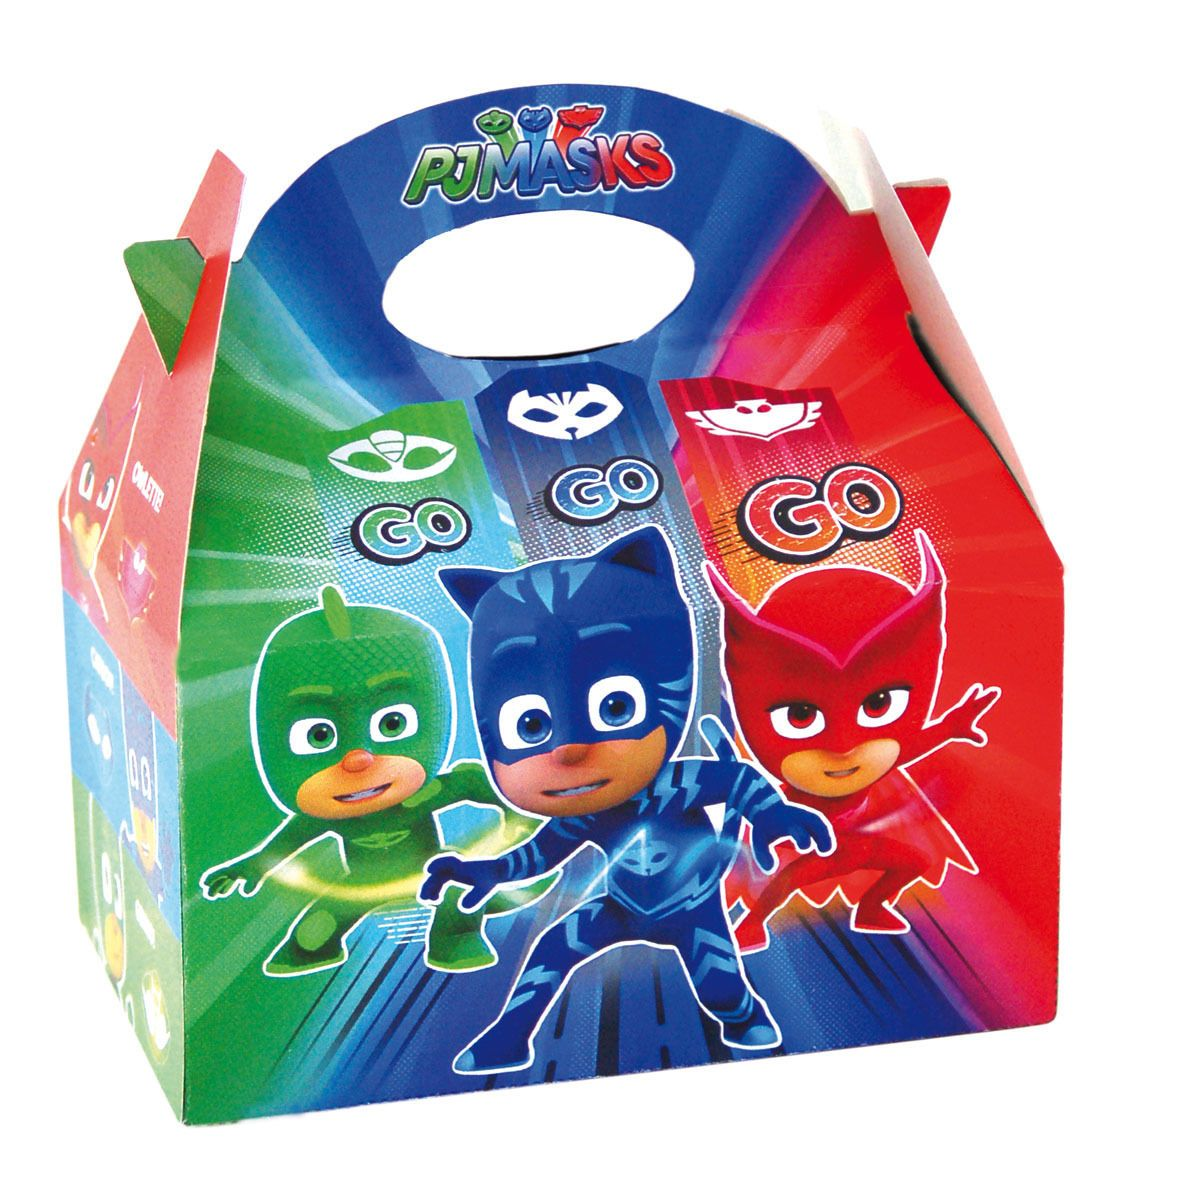 Pj Masks Party Tableware Ebay Home Furniture Diy Pj Mask Party Pj Masks Birthday Party Boys Birthday Party Box